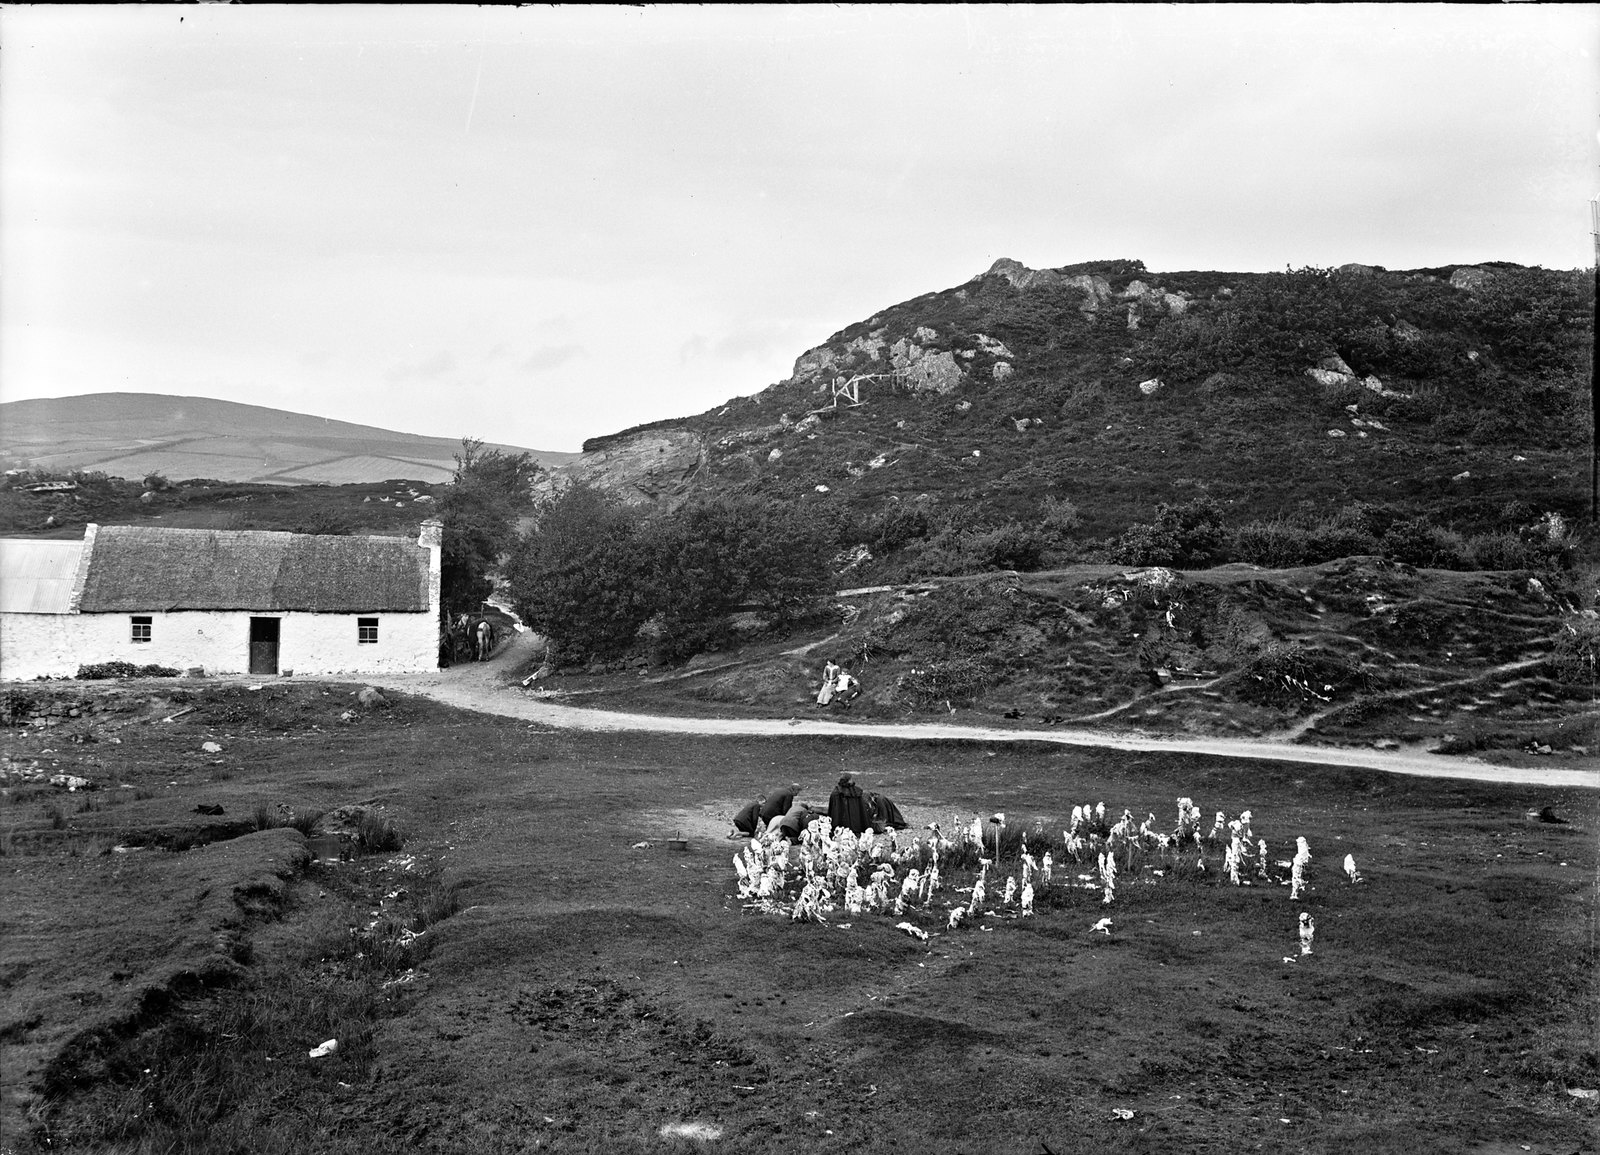 Doon Well, Donegal Highlands, Termon, Co. Donegal   by National Library of Ireland on The Commons